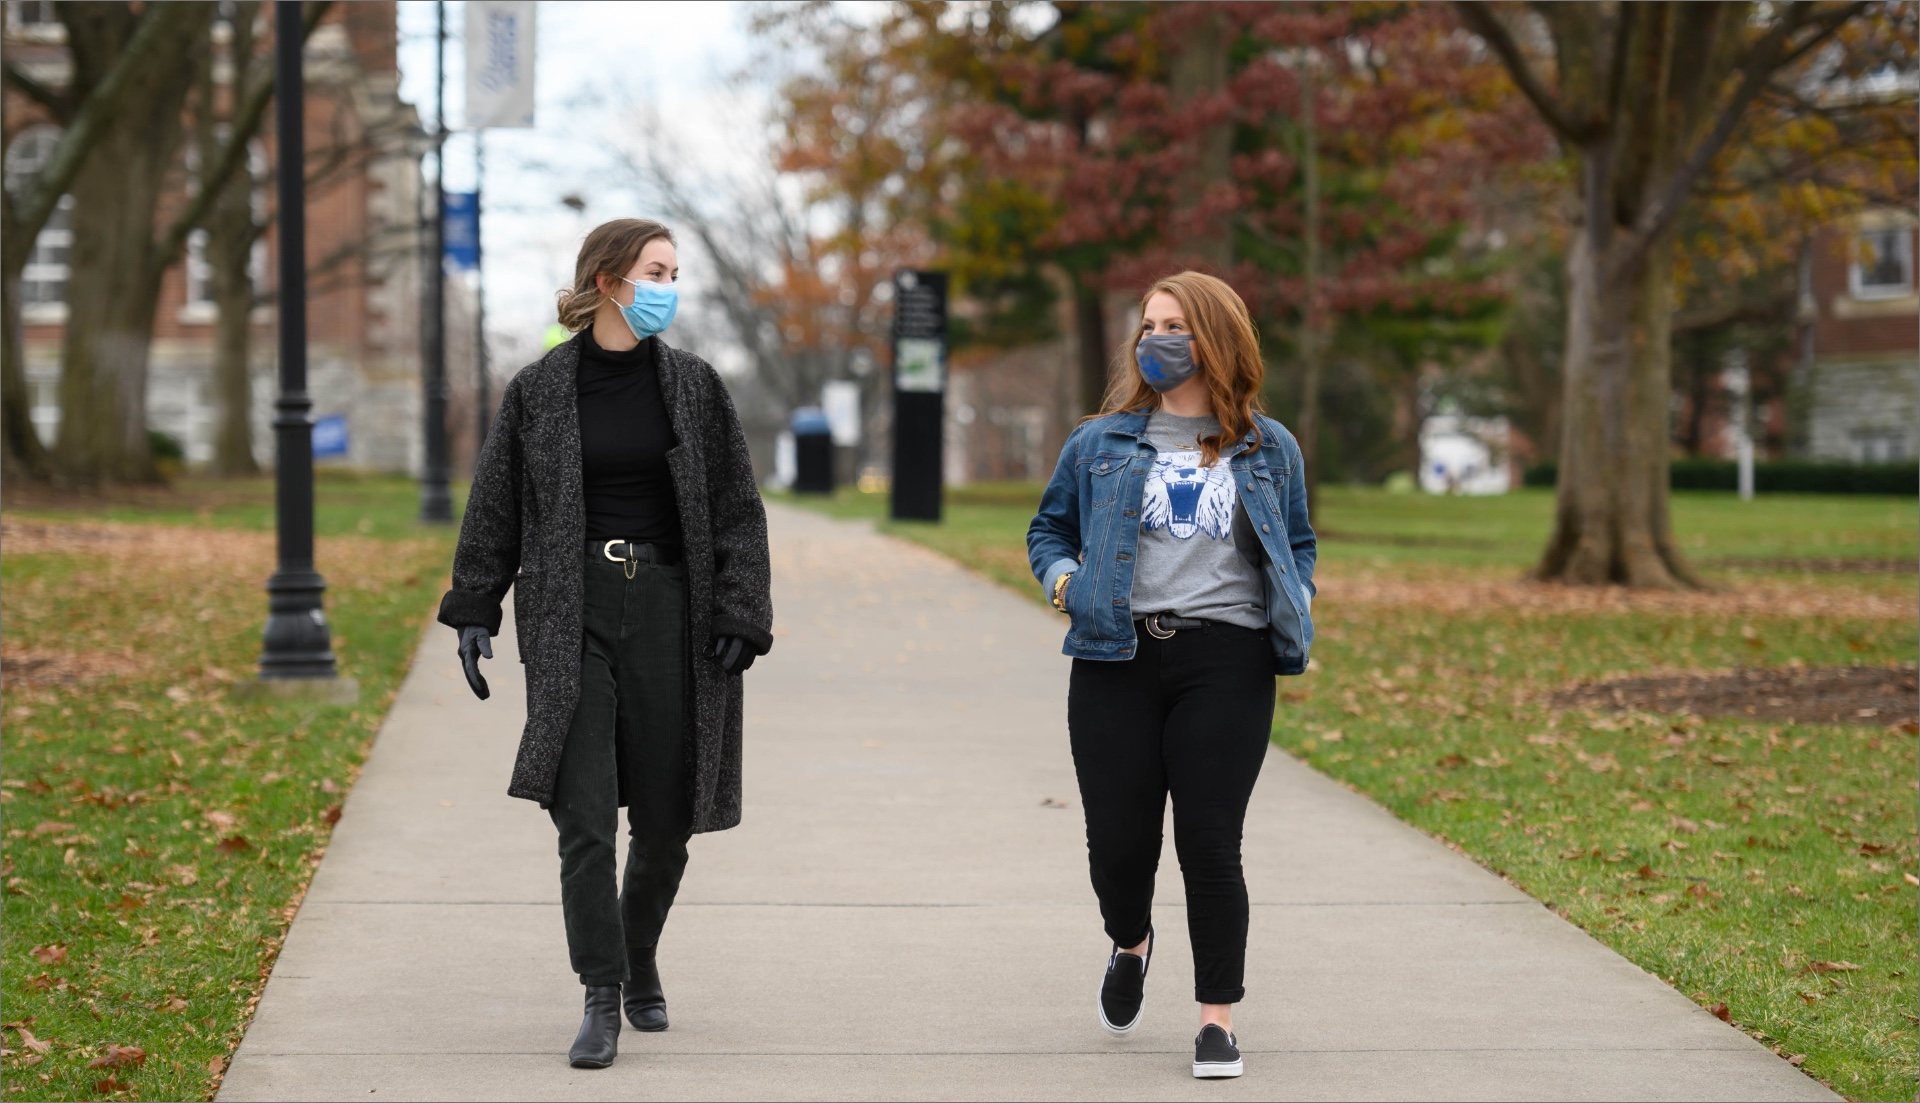 Fielden and another college student smile at each other as they walk down a path on UK's campus. Both are wearing masks.